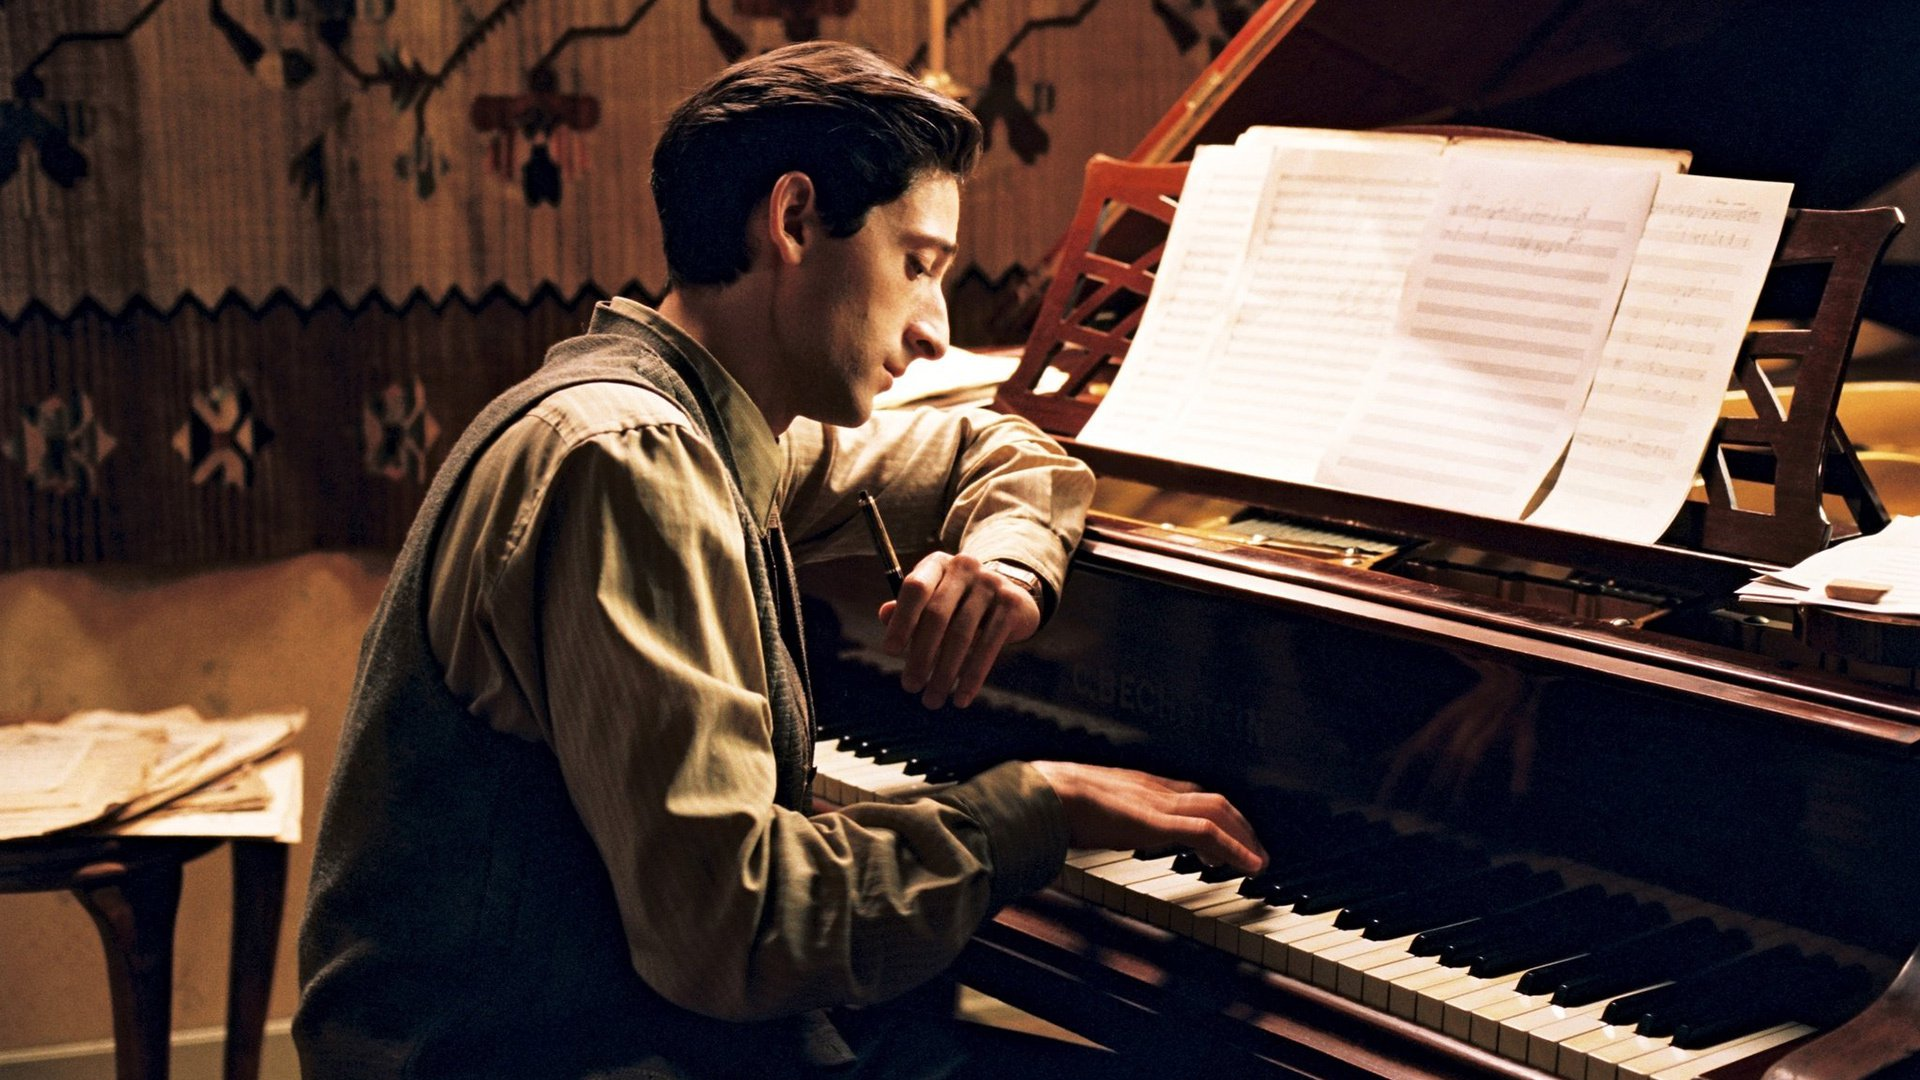 Rezultat iskanja slik za THE PIANIST 2002